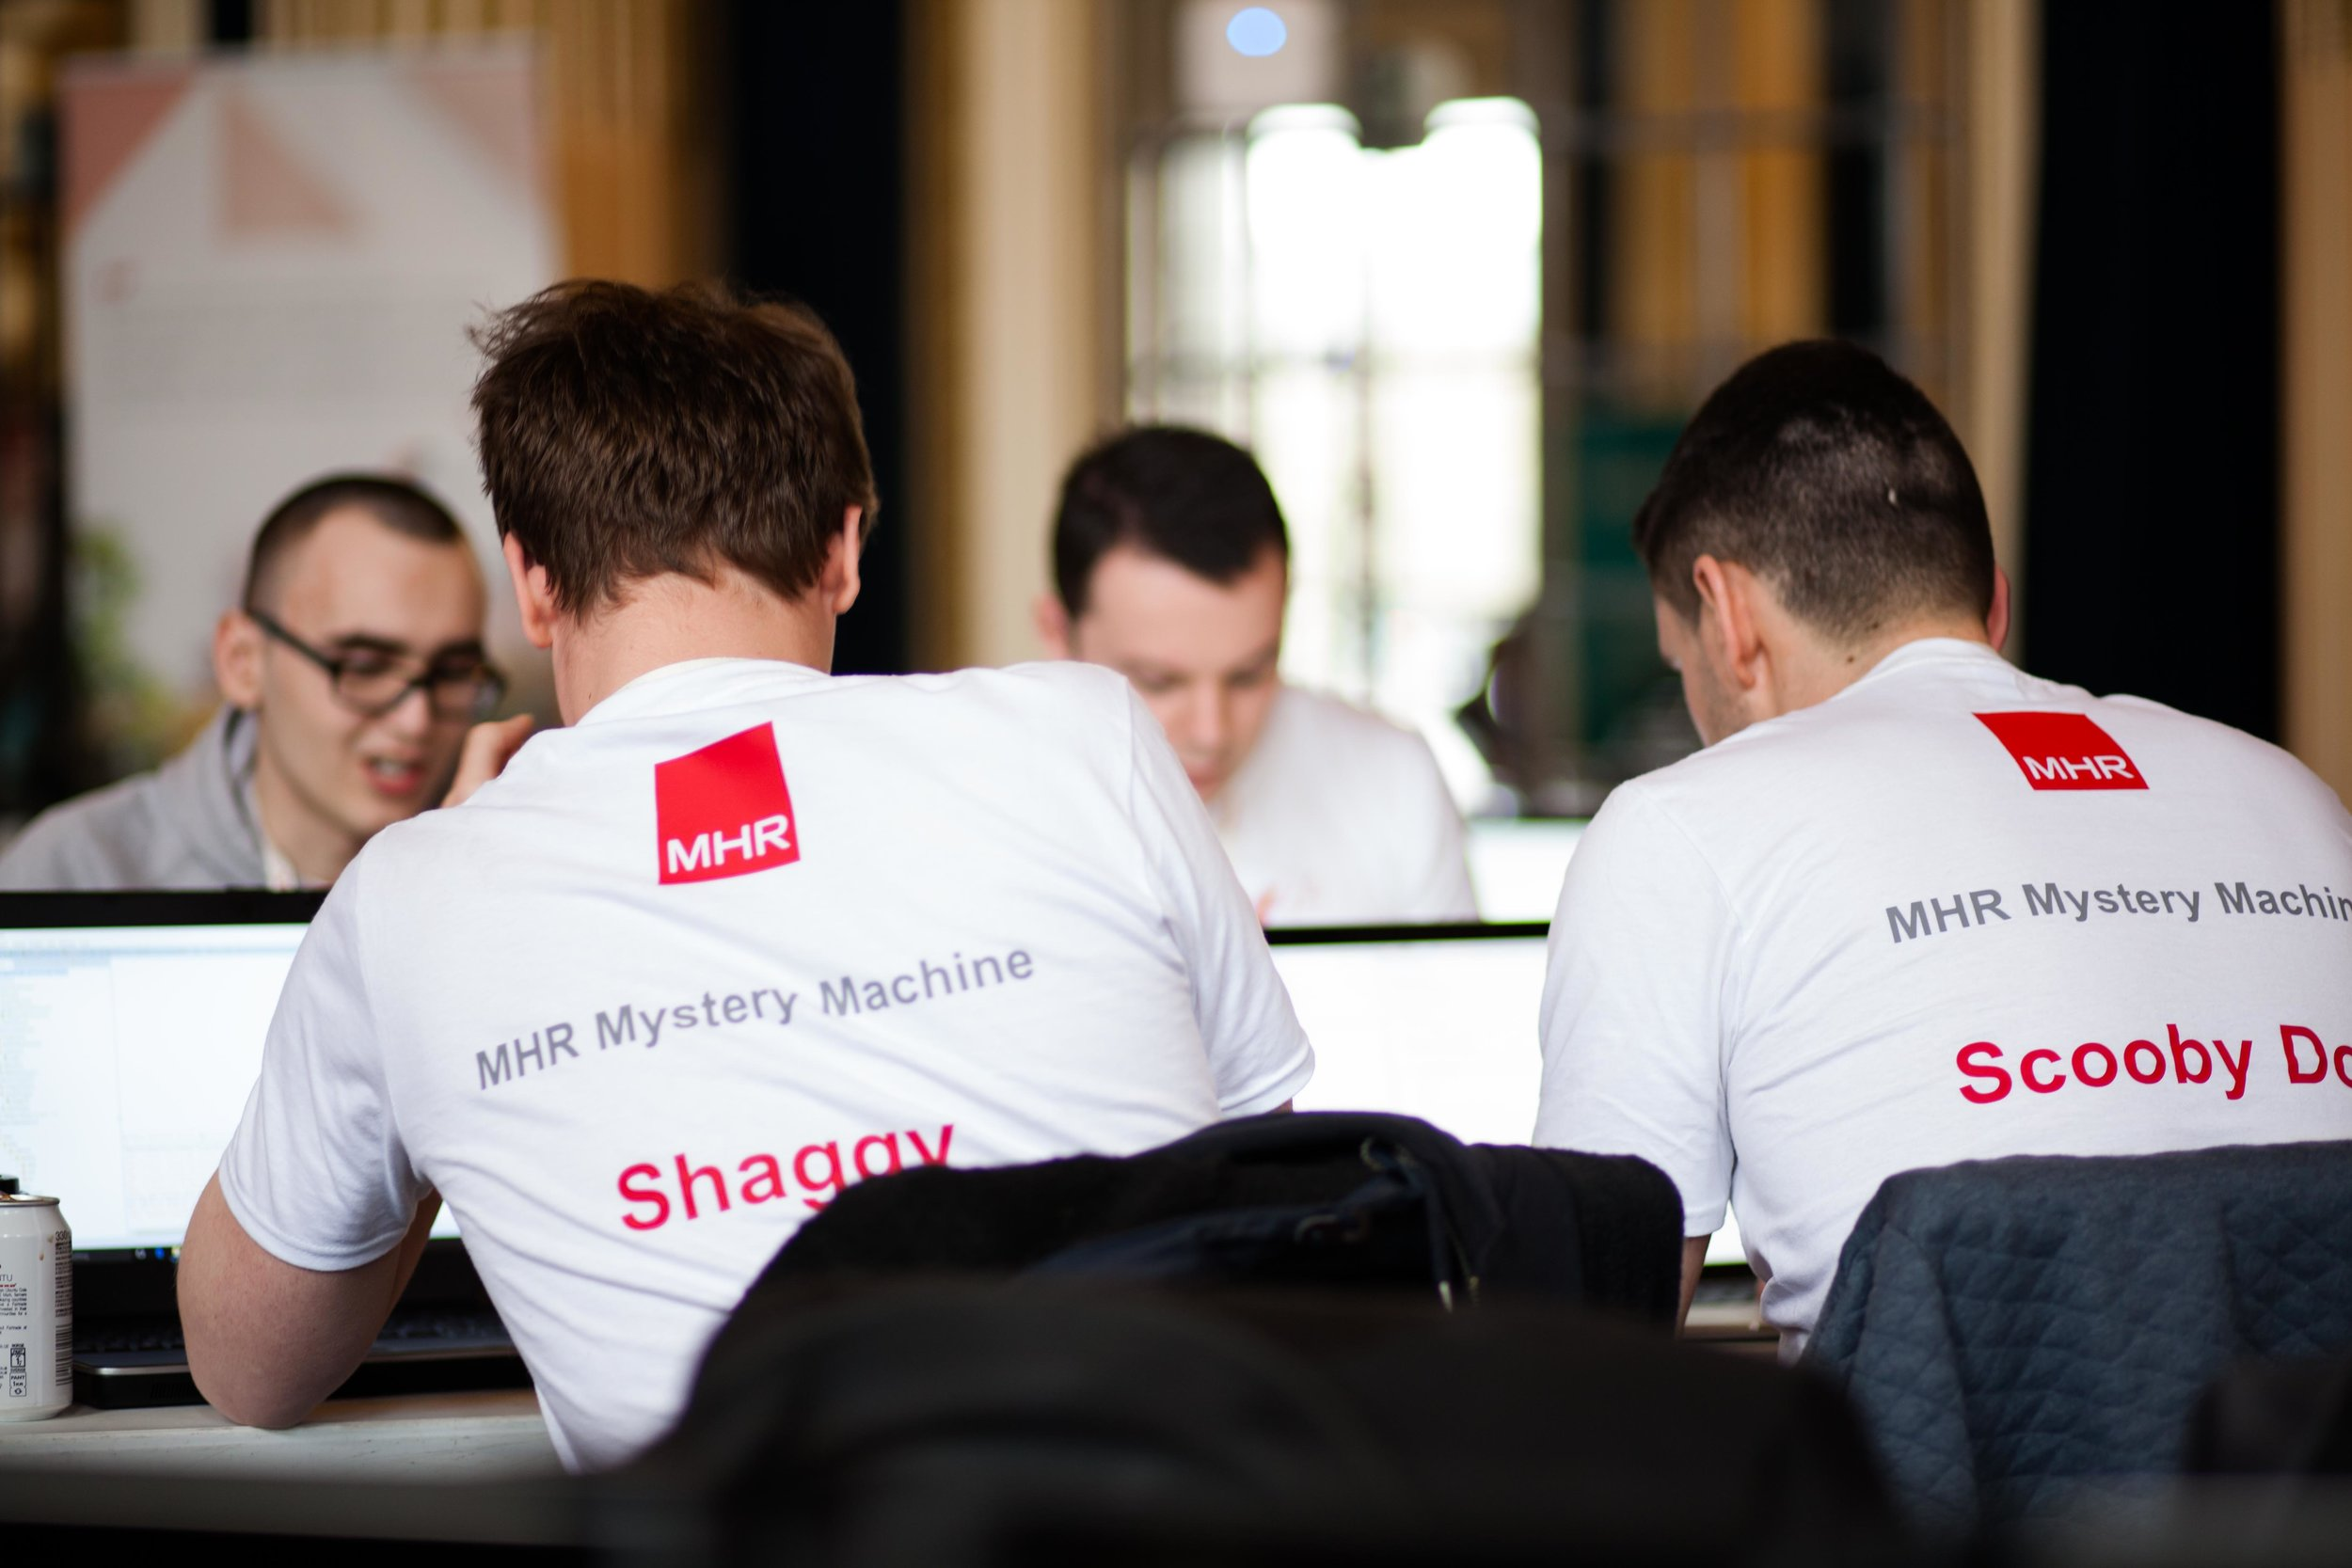 One of the MHR hacking teams!